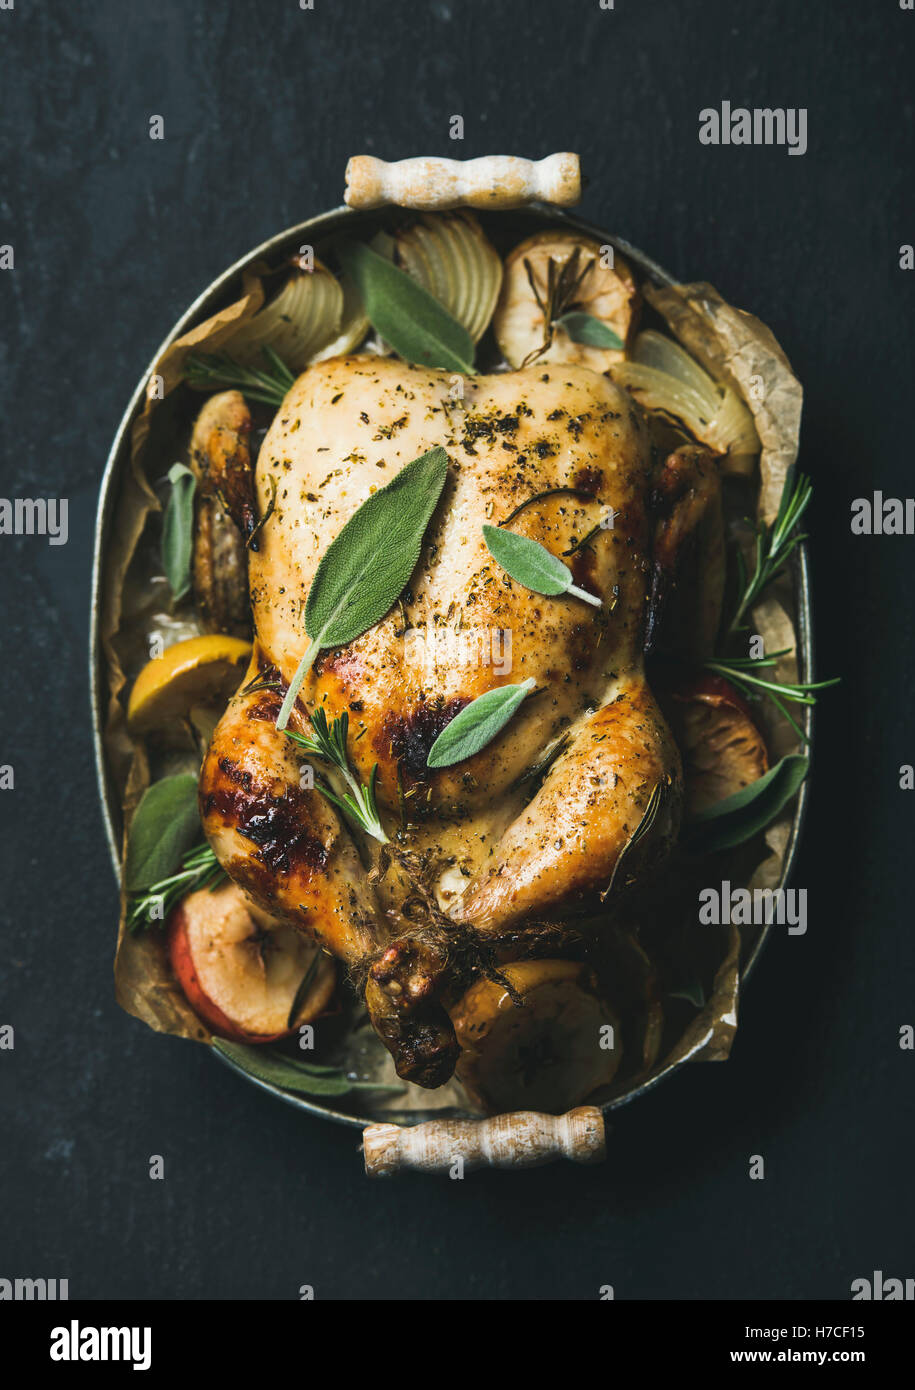 Oven roasted whole chicken with onion, apples and sage in metal serving tray over dark stone background, top view. - Stock Image